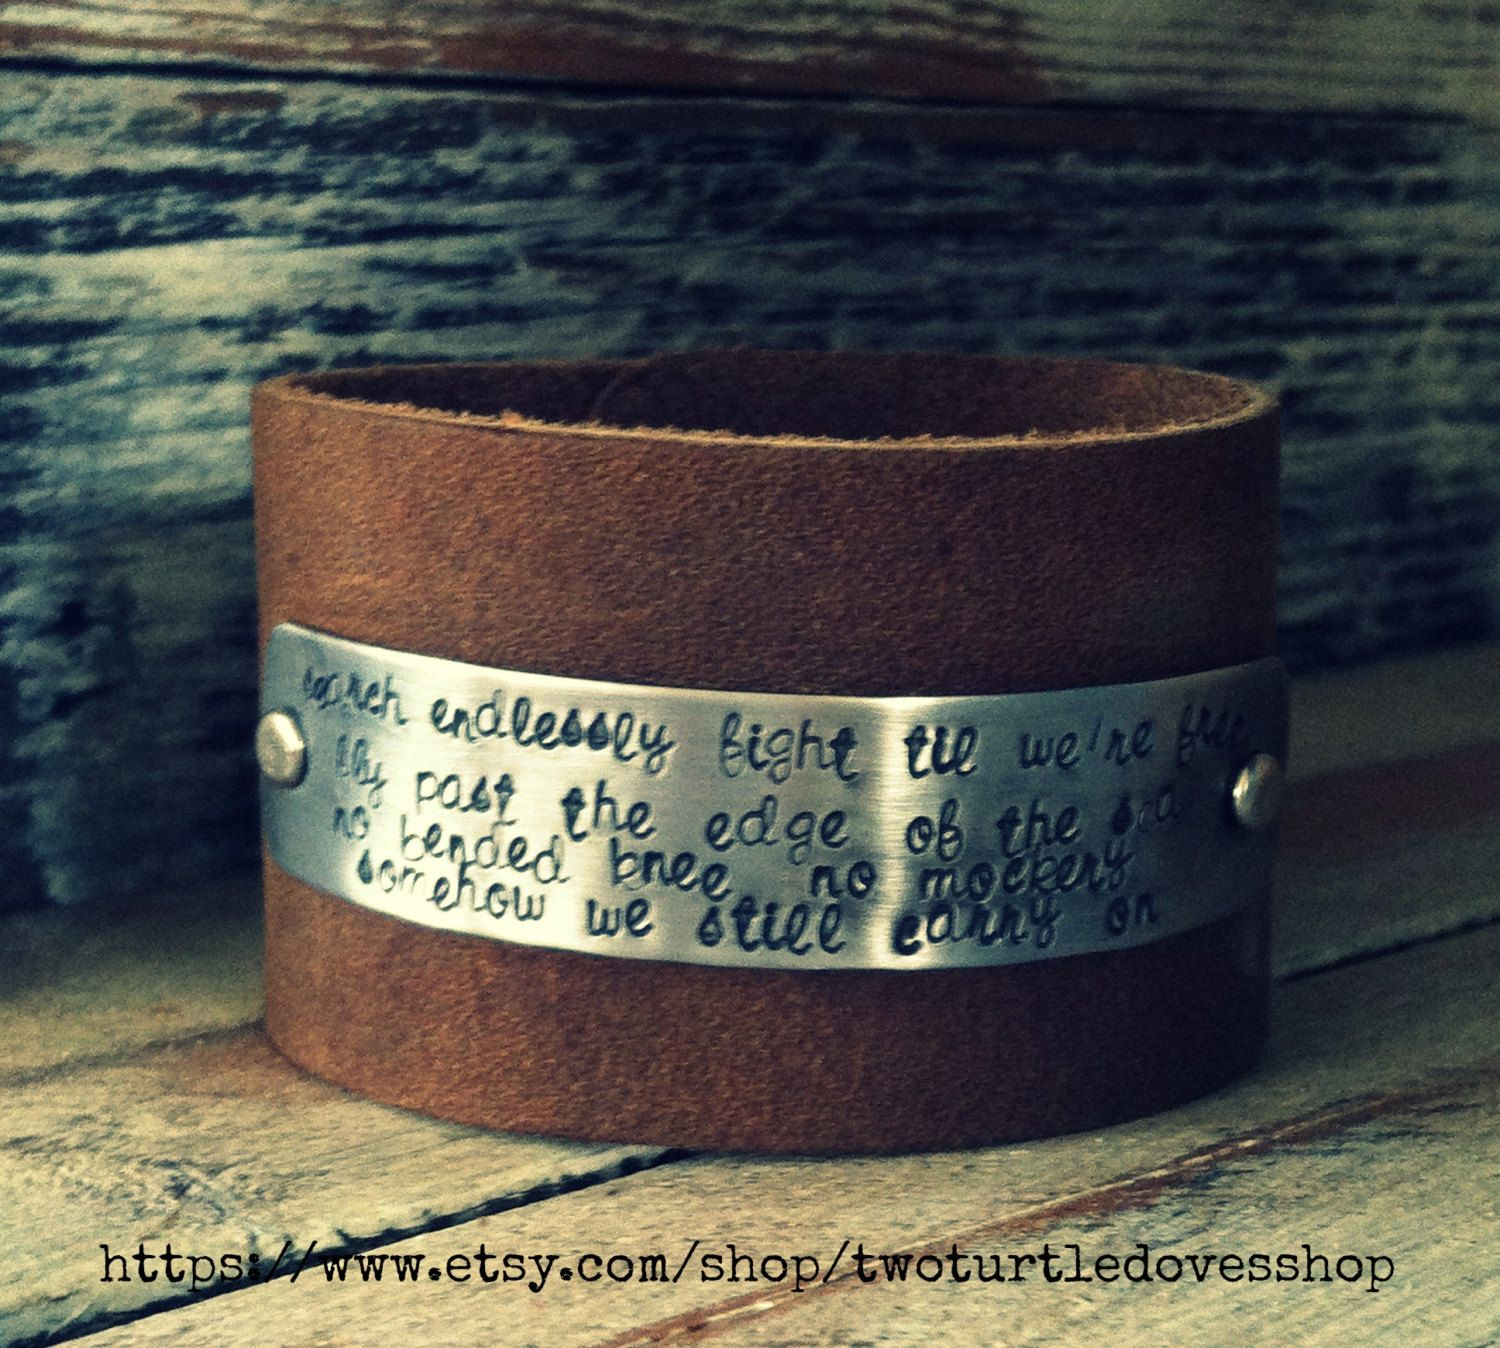 Limited Edition Cuff Bracelet Avenged By Twoturtledovesshop